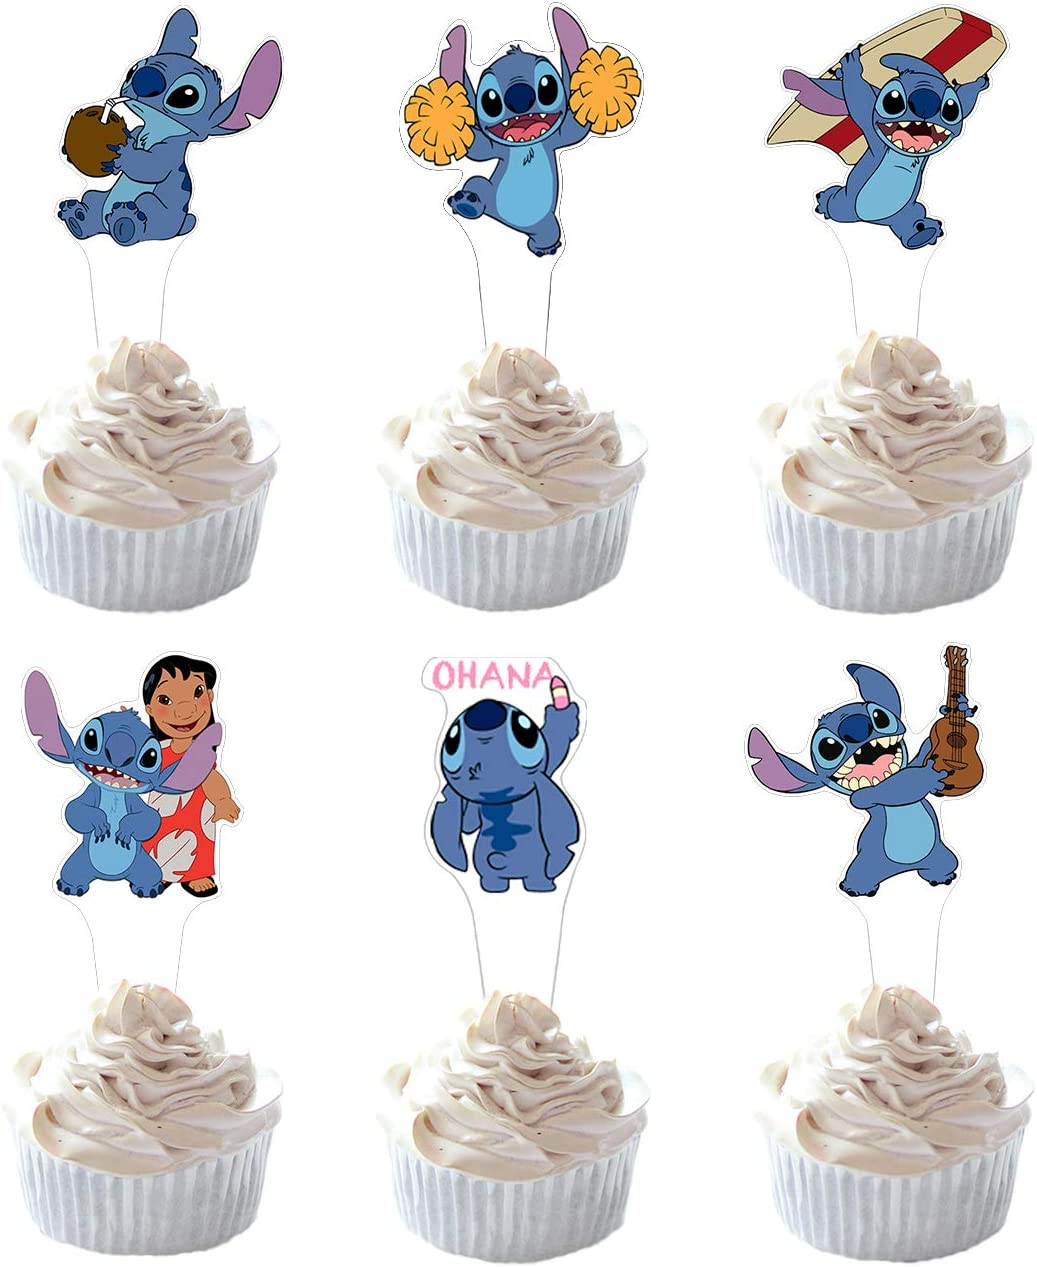 Party Hive 24pc Lilo Stitch Cupcake Toppers for Kids Birthday Party Event Decor